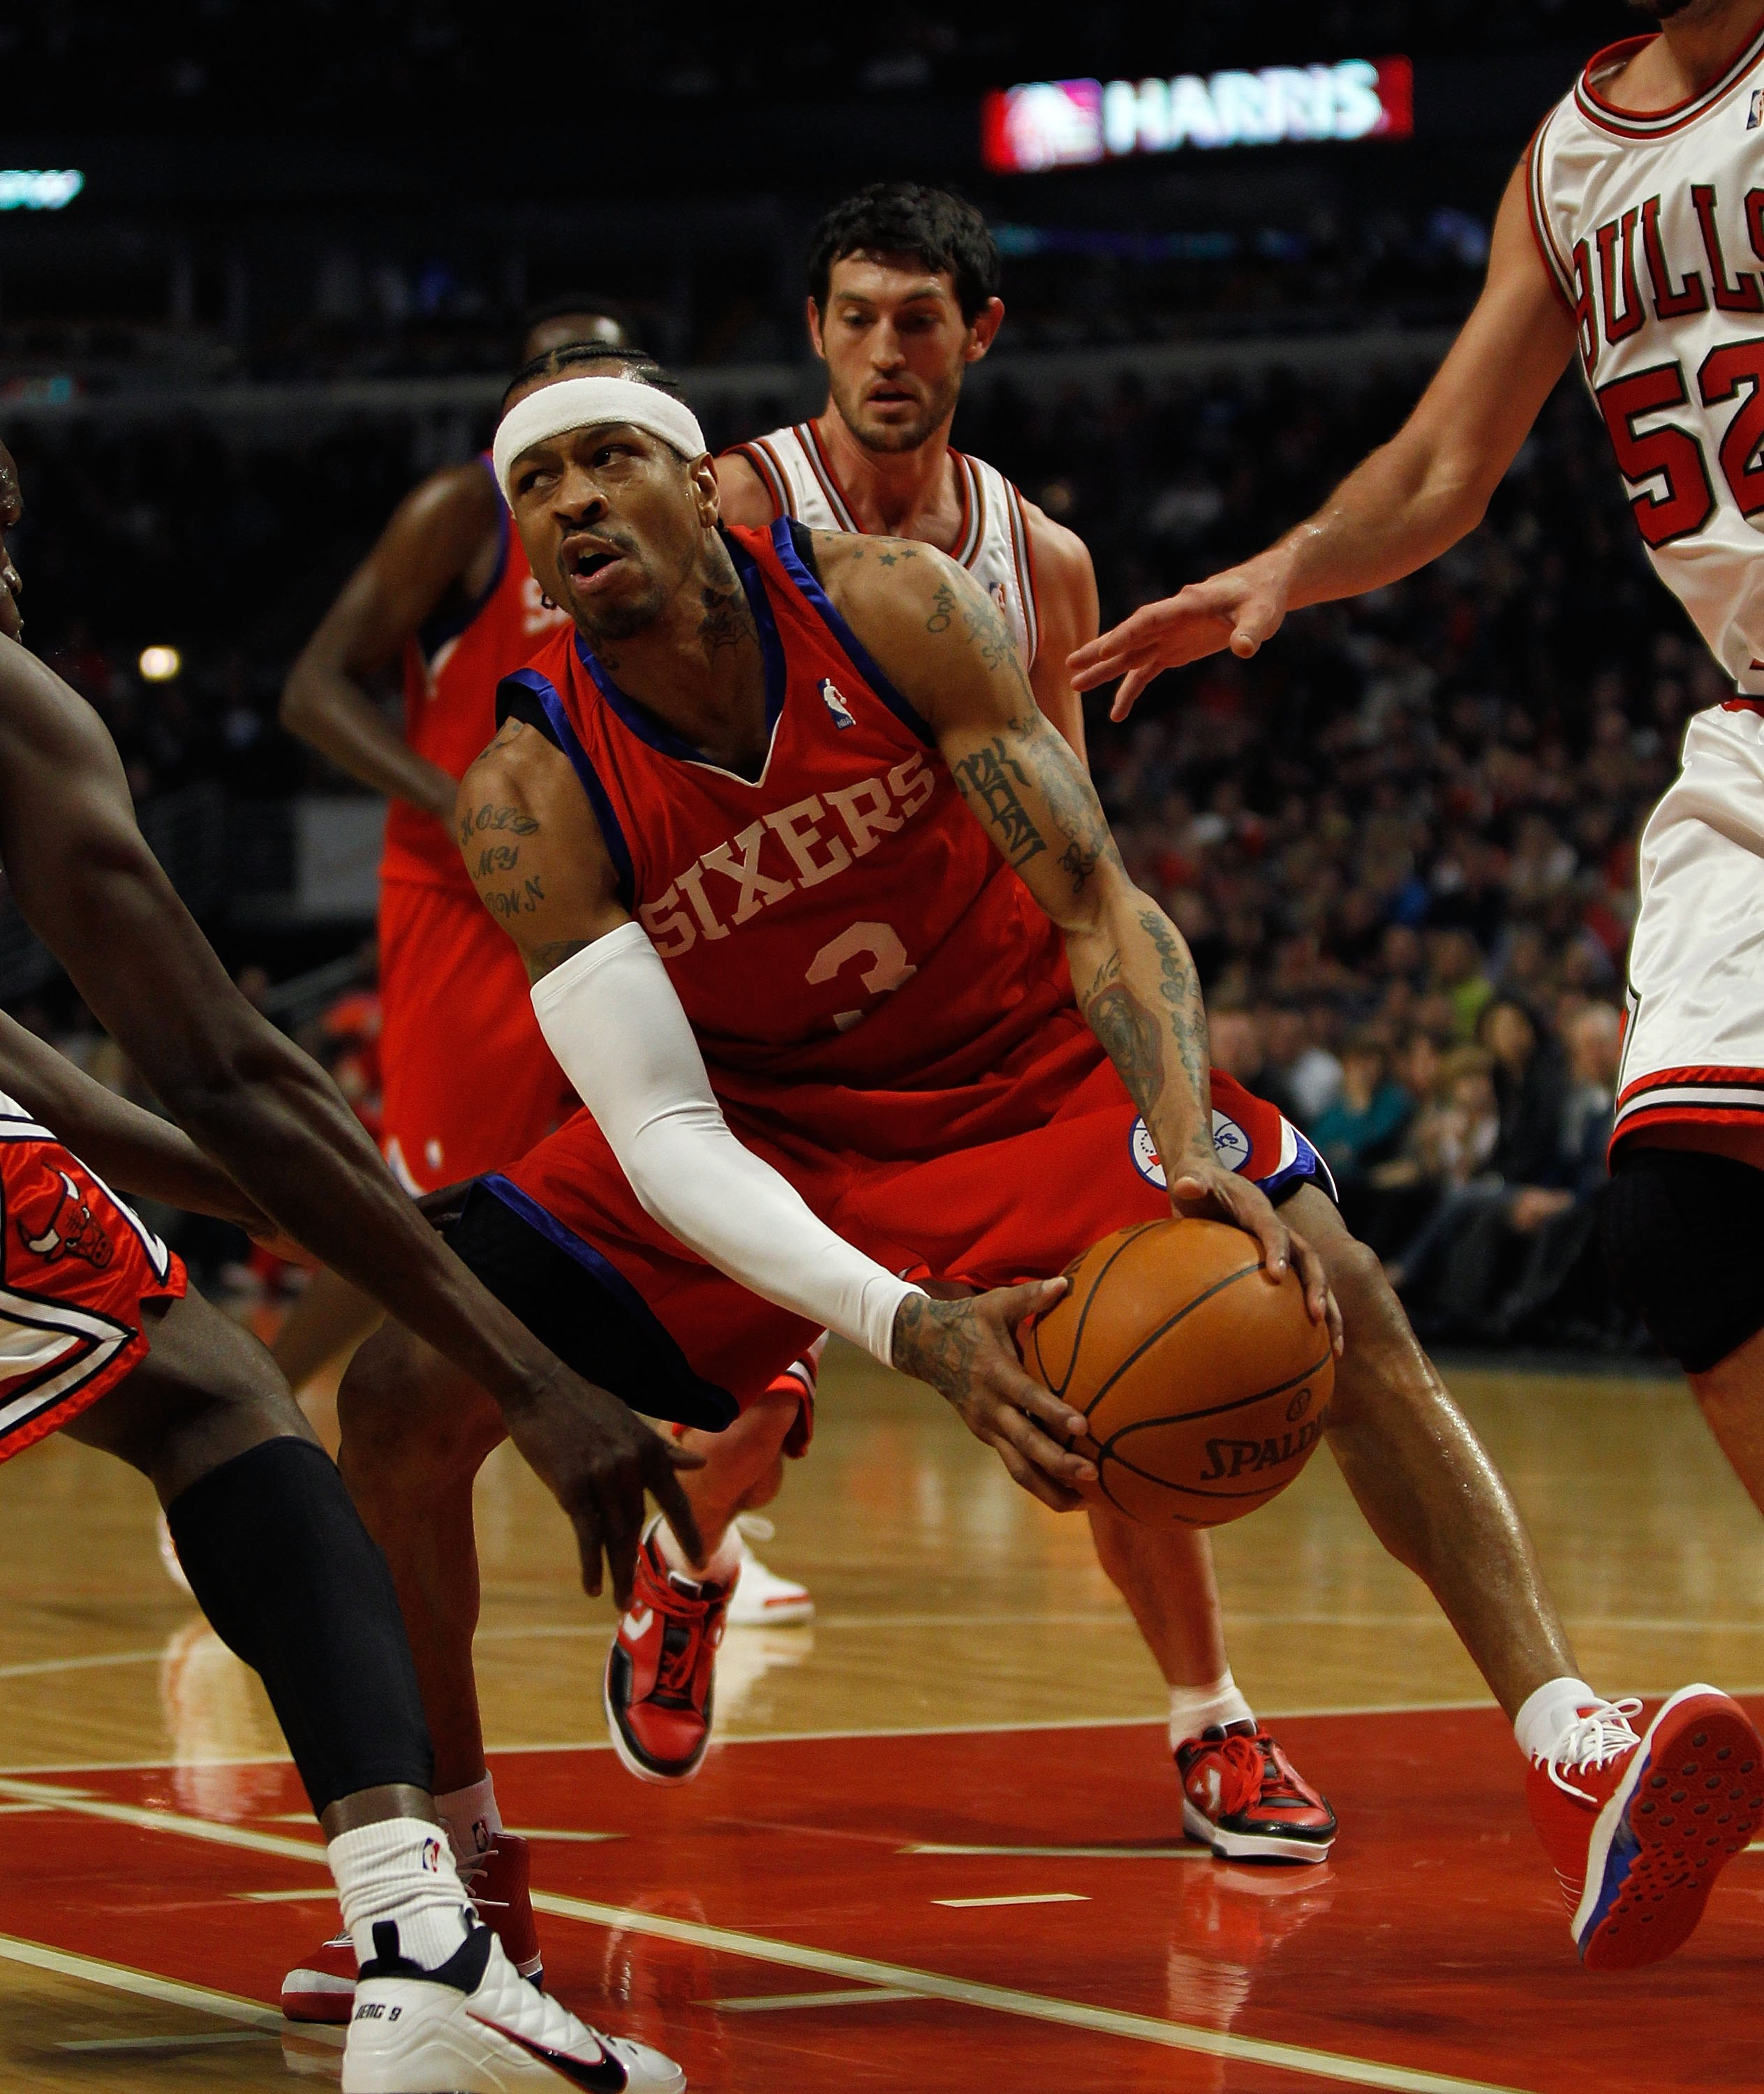 CHICAGO - FEBRUARY 20: Allen Iverson #3 of the Philadelphia 76ers moves against the Chicago Bulls at the United Center on February 20, 2010 in Chicago, Illinois. The Bulls defeated the 76ers 122-90. NOTE TO USER: User expressly acknowledges and agrees tha